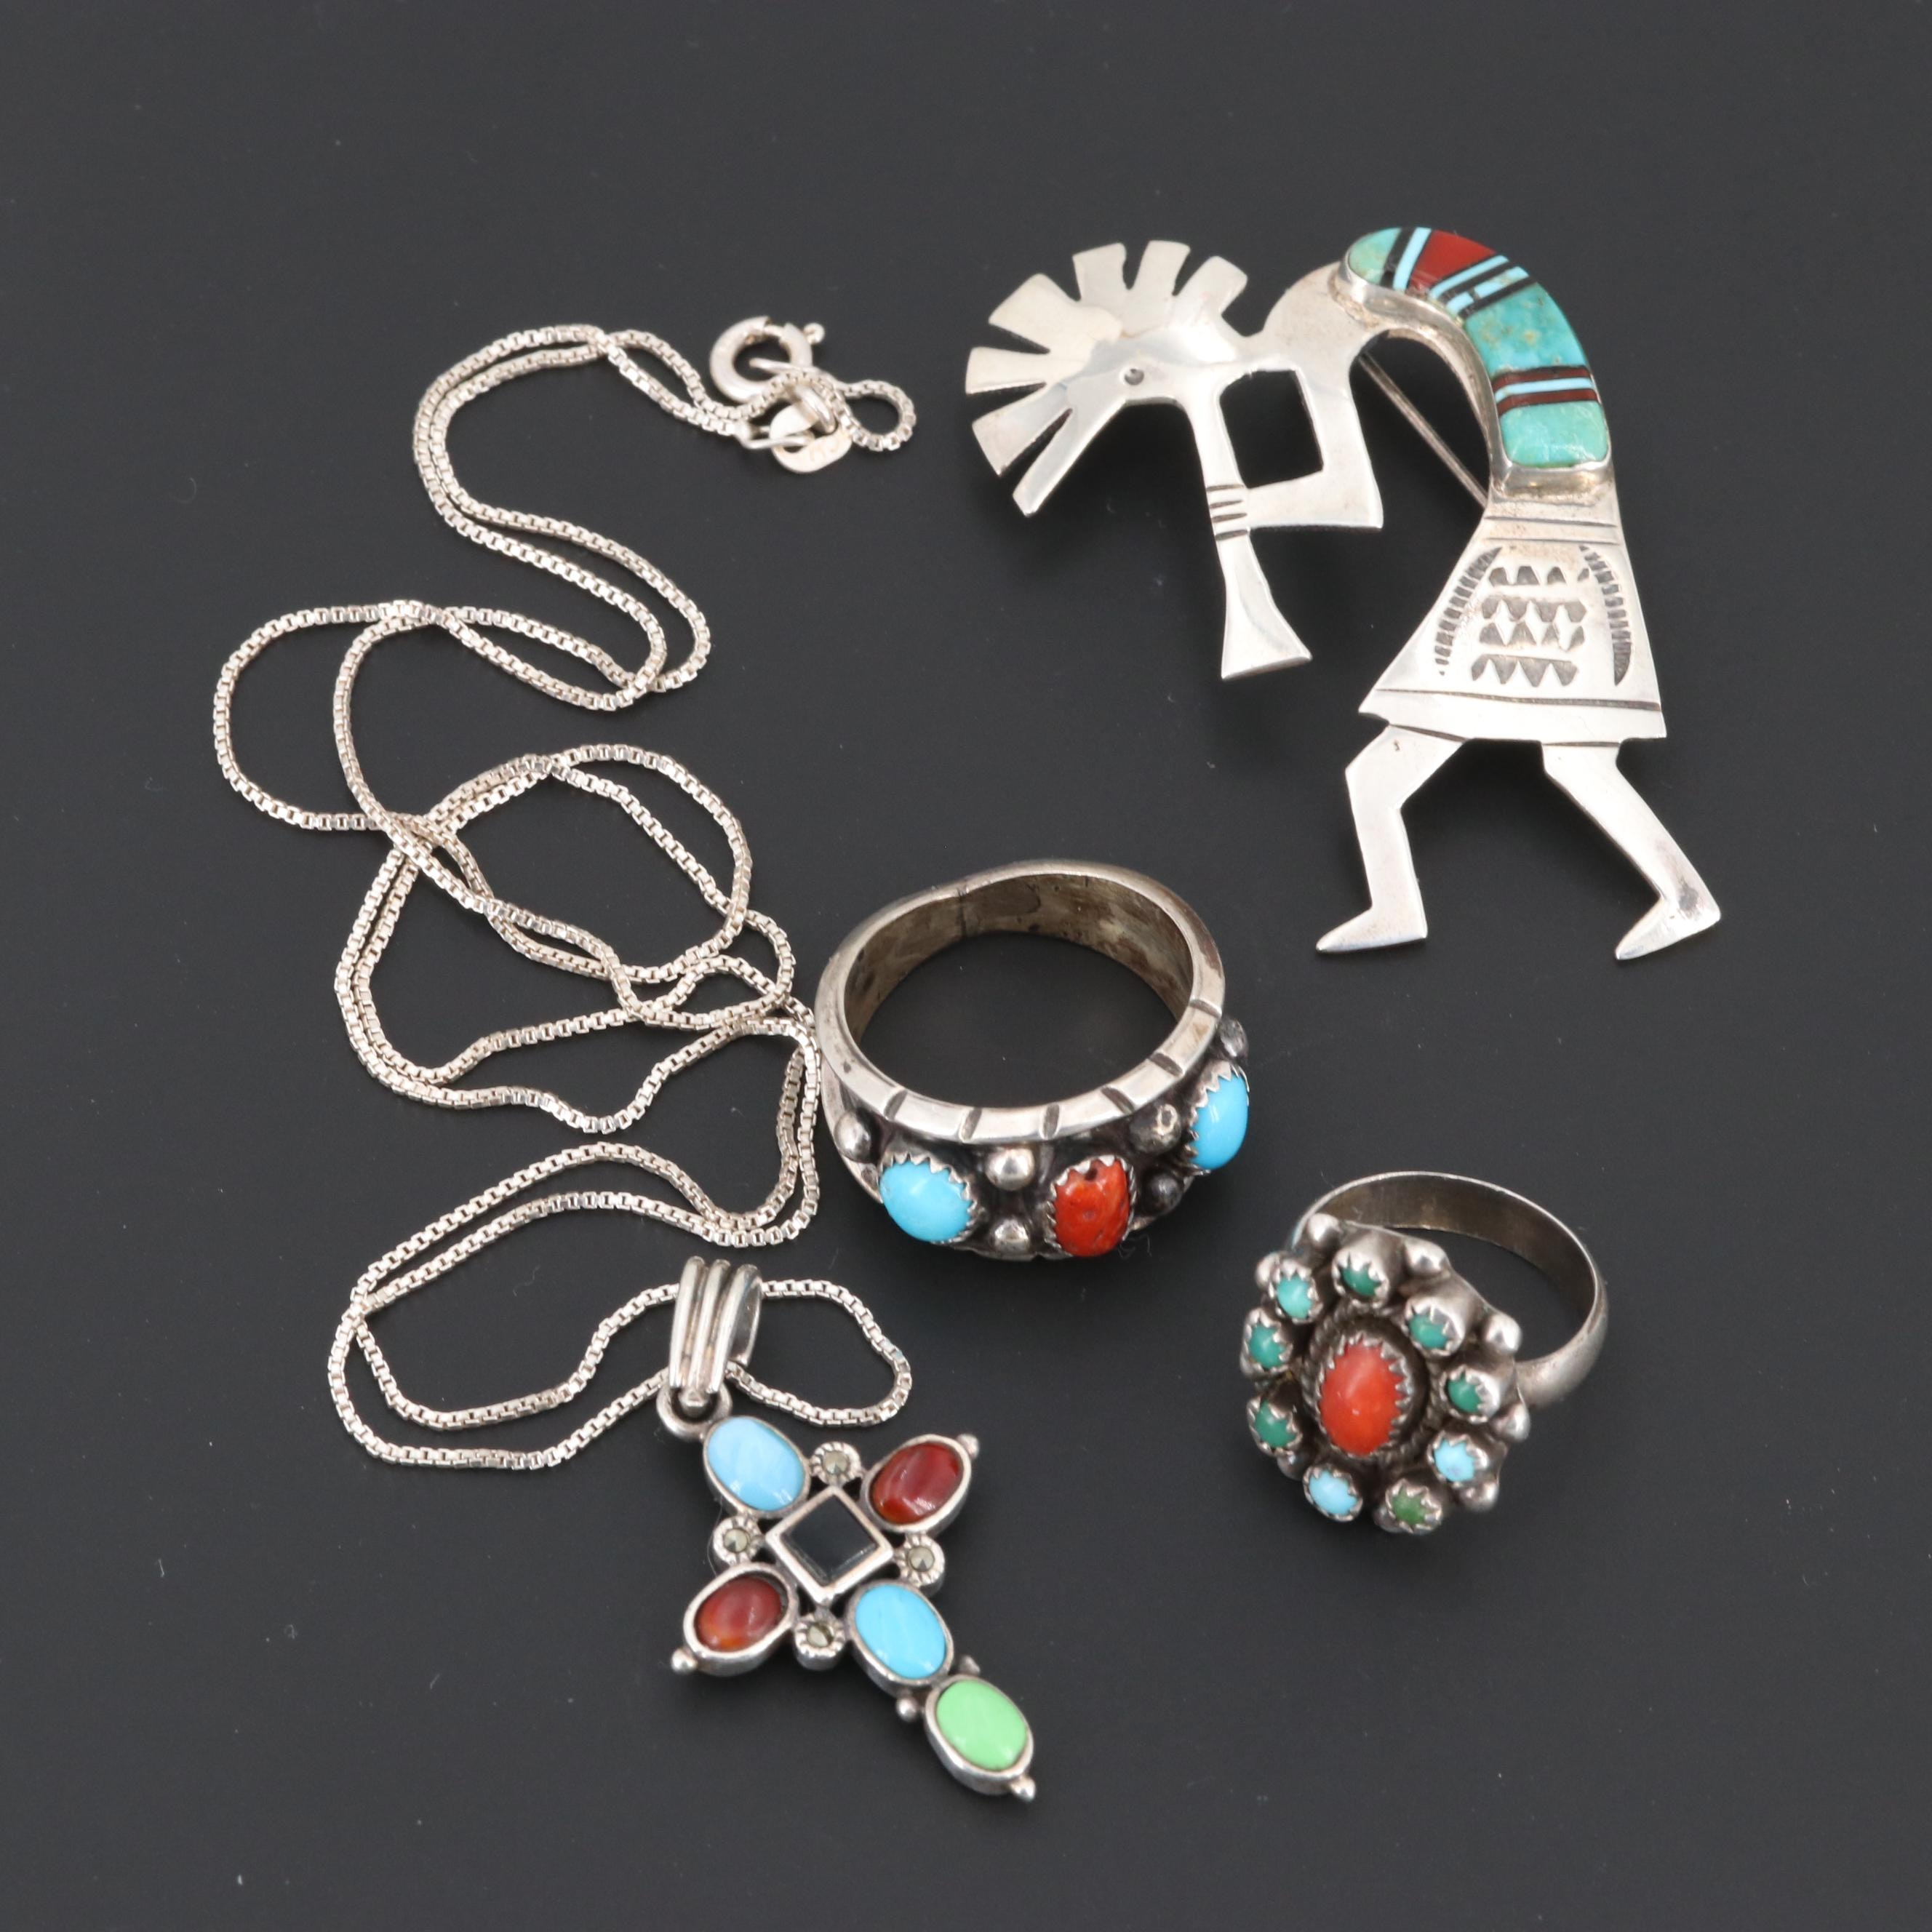 Southwestern Style Sterling Silver Jewelry Including Turquoise and Coral